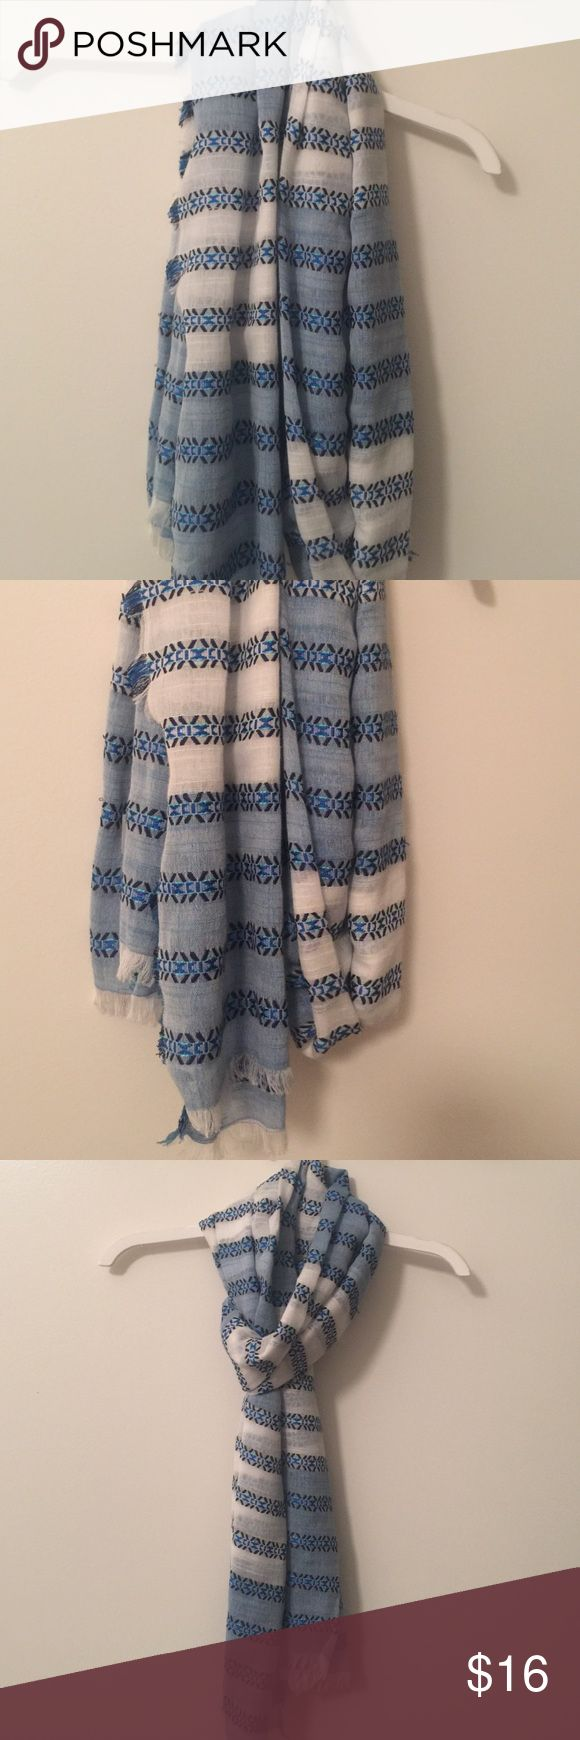 J Crew sky blue fringed scarf Super pretty blue and white scarf with an embroidered motif and fringe. J. Crew Accessories Scarves & Wraps